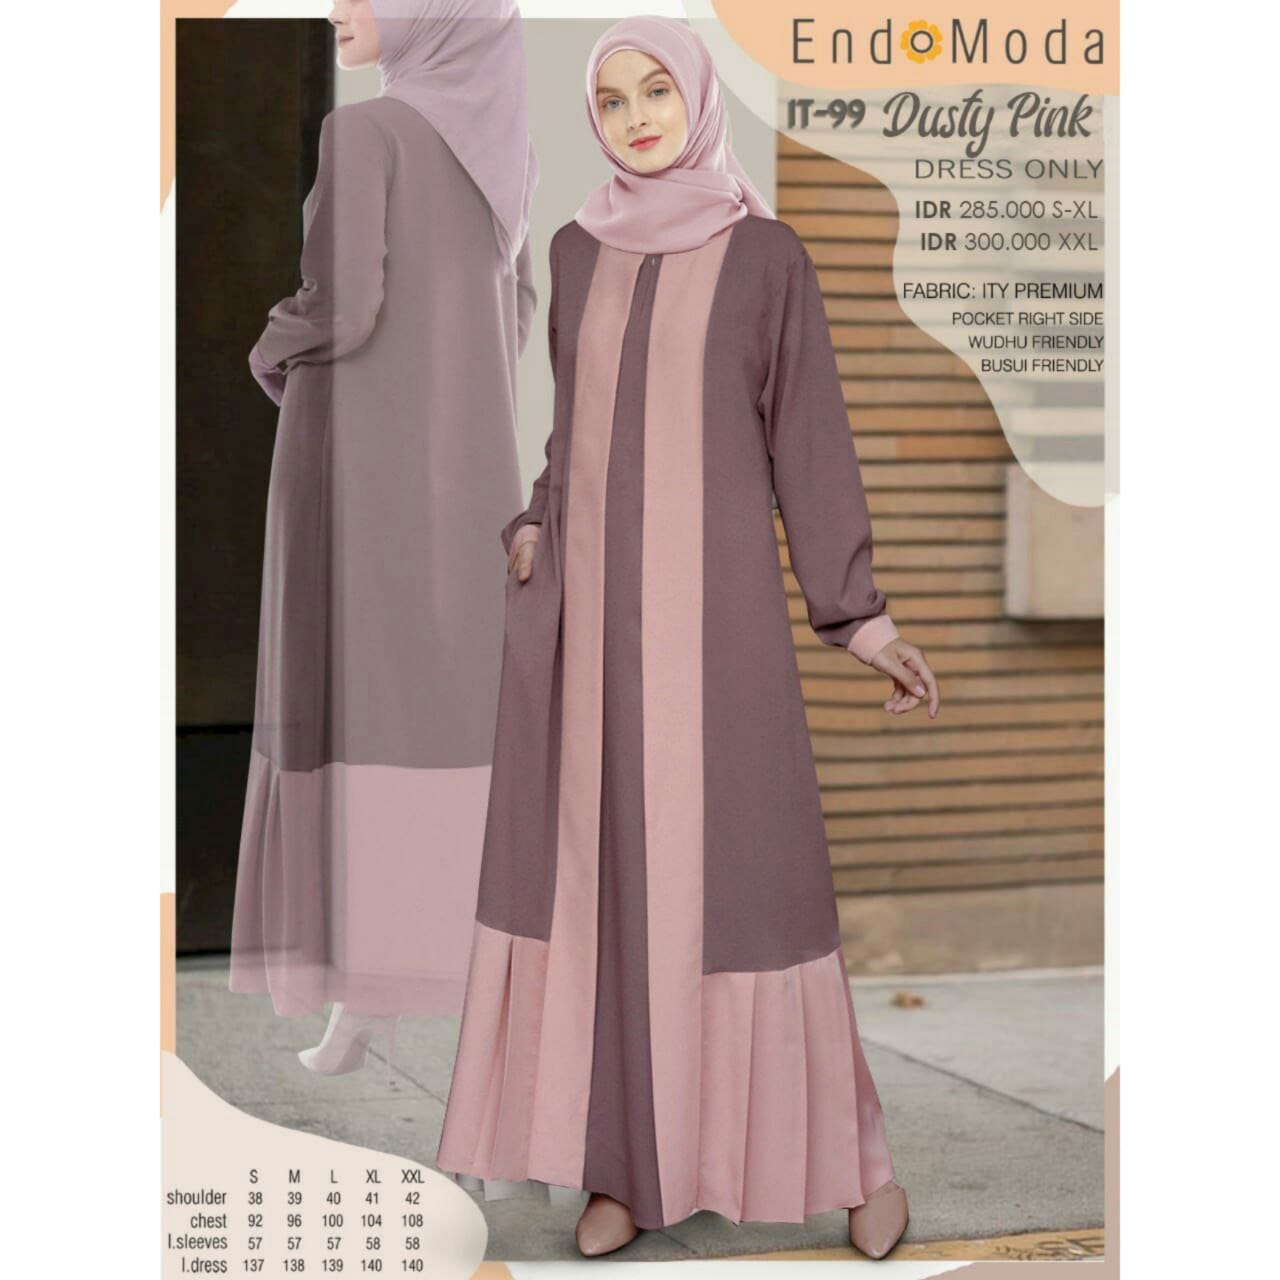 Gamis Endomoda IT 99 Dusty Pink